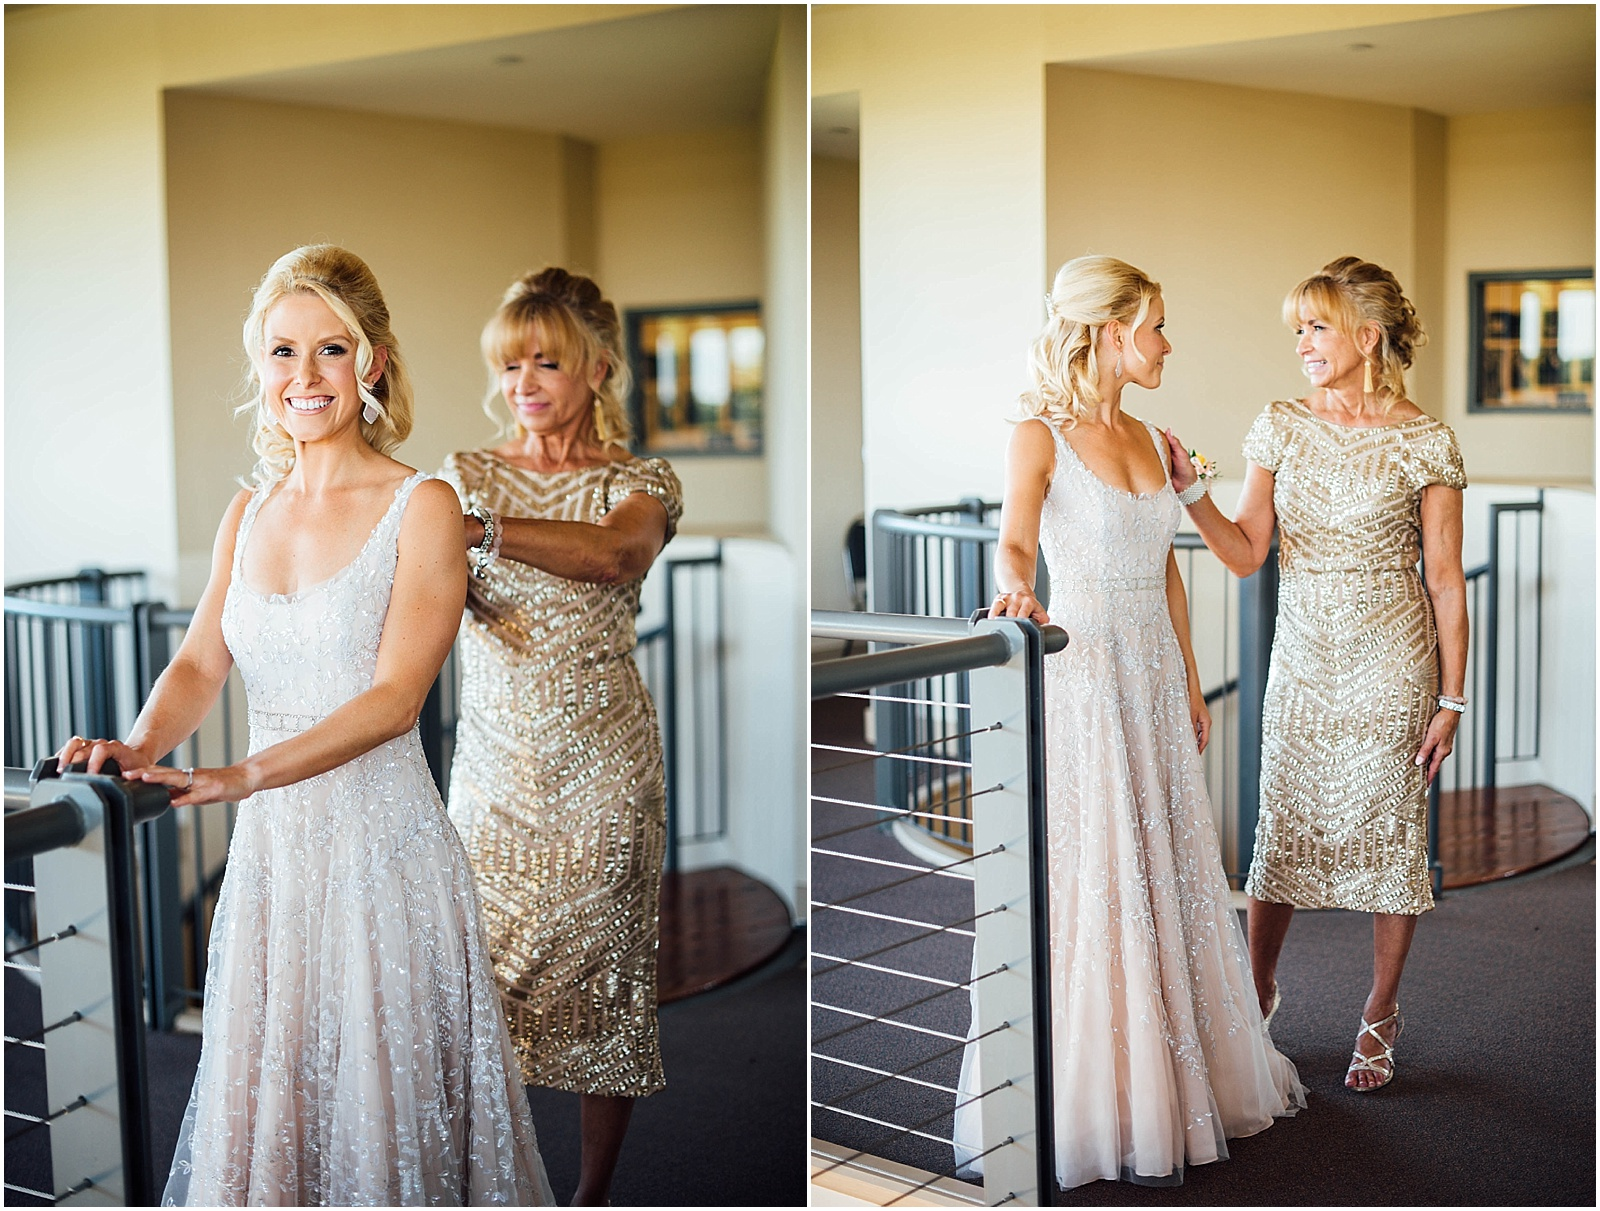 Bride and Mom Getting Ready Blush Pink Bridal Details at Lady Bird Johnson Wildflower Center Austin Texas Wedding